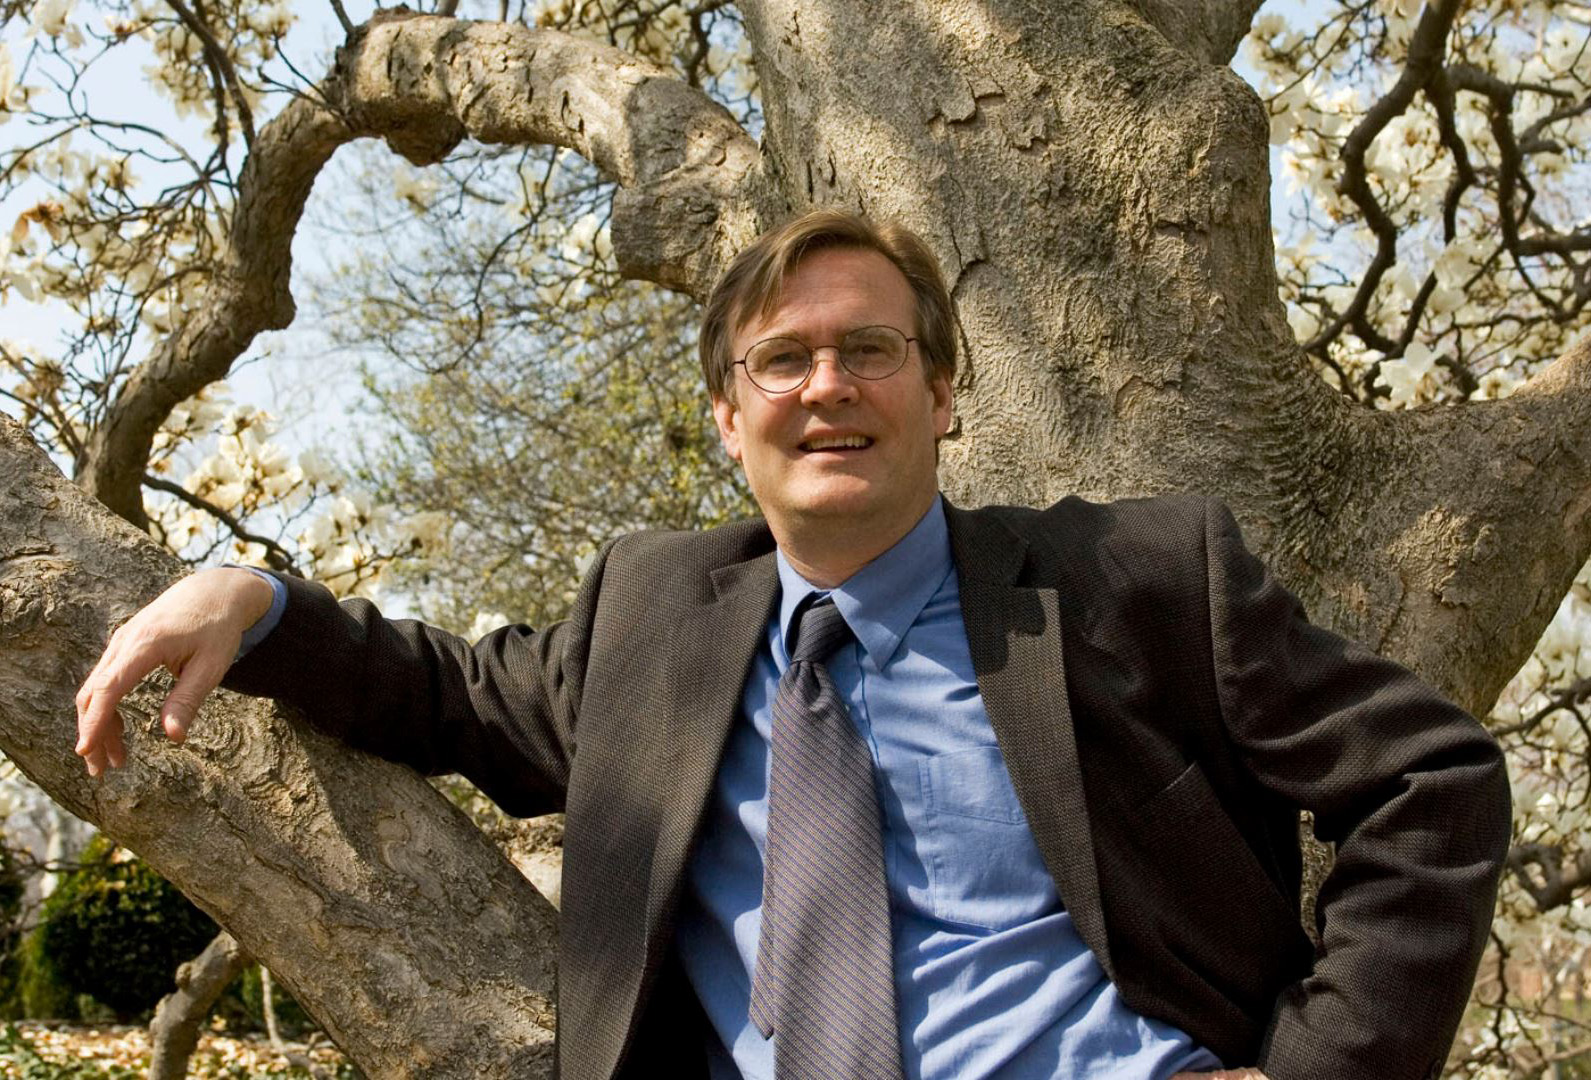 Dr. Timothy Beatley to Lecture on Biophilic Cities Feb. 26, 2020